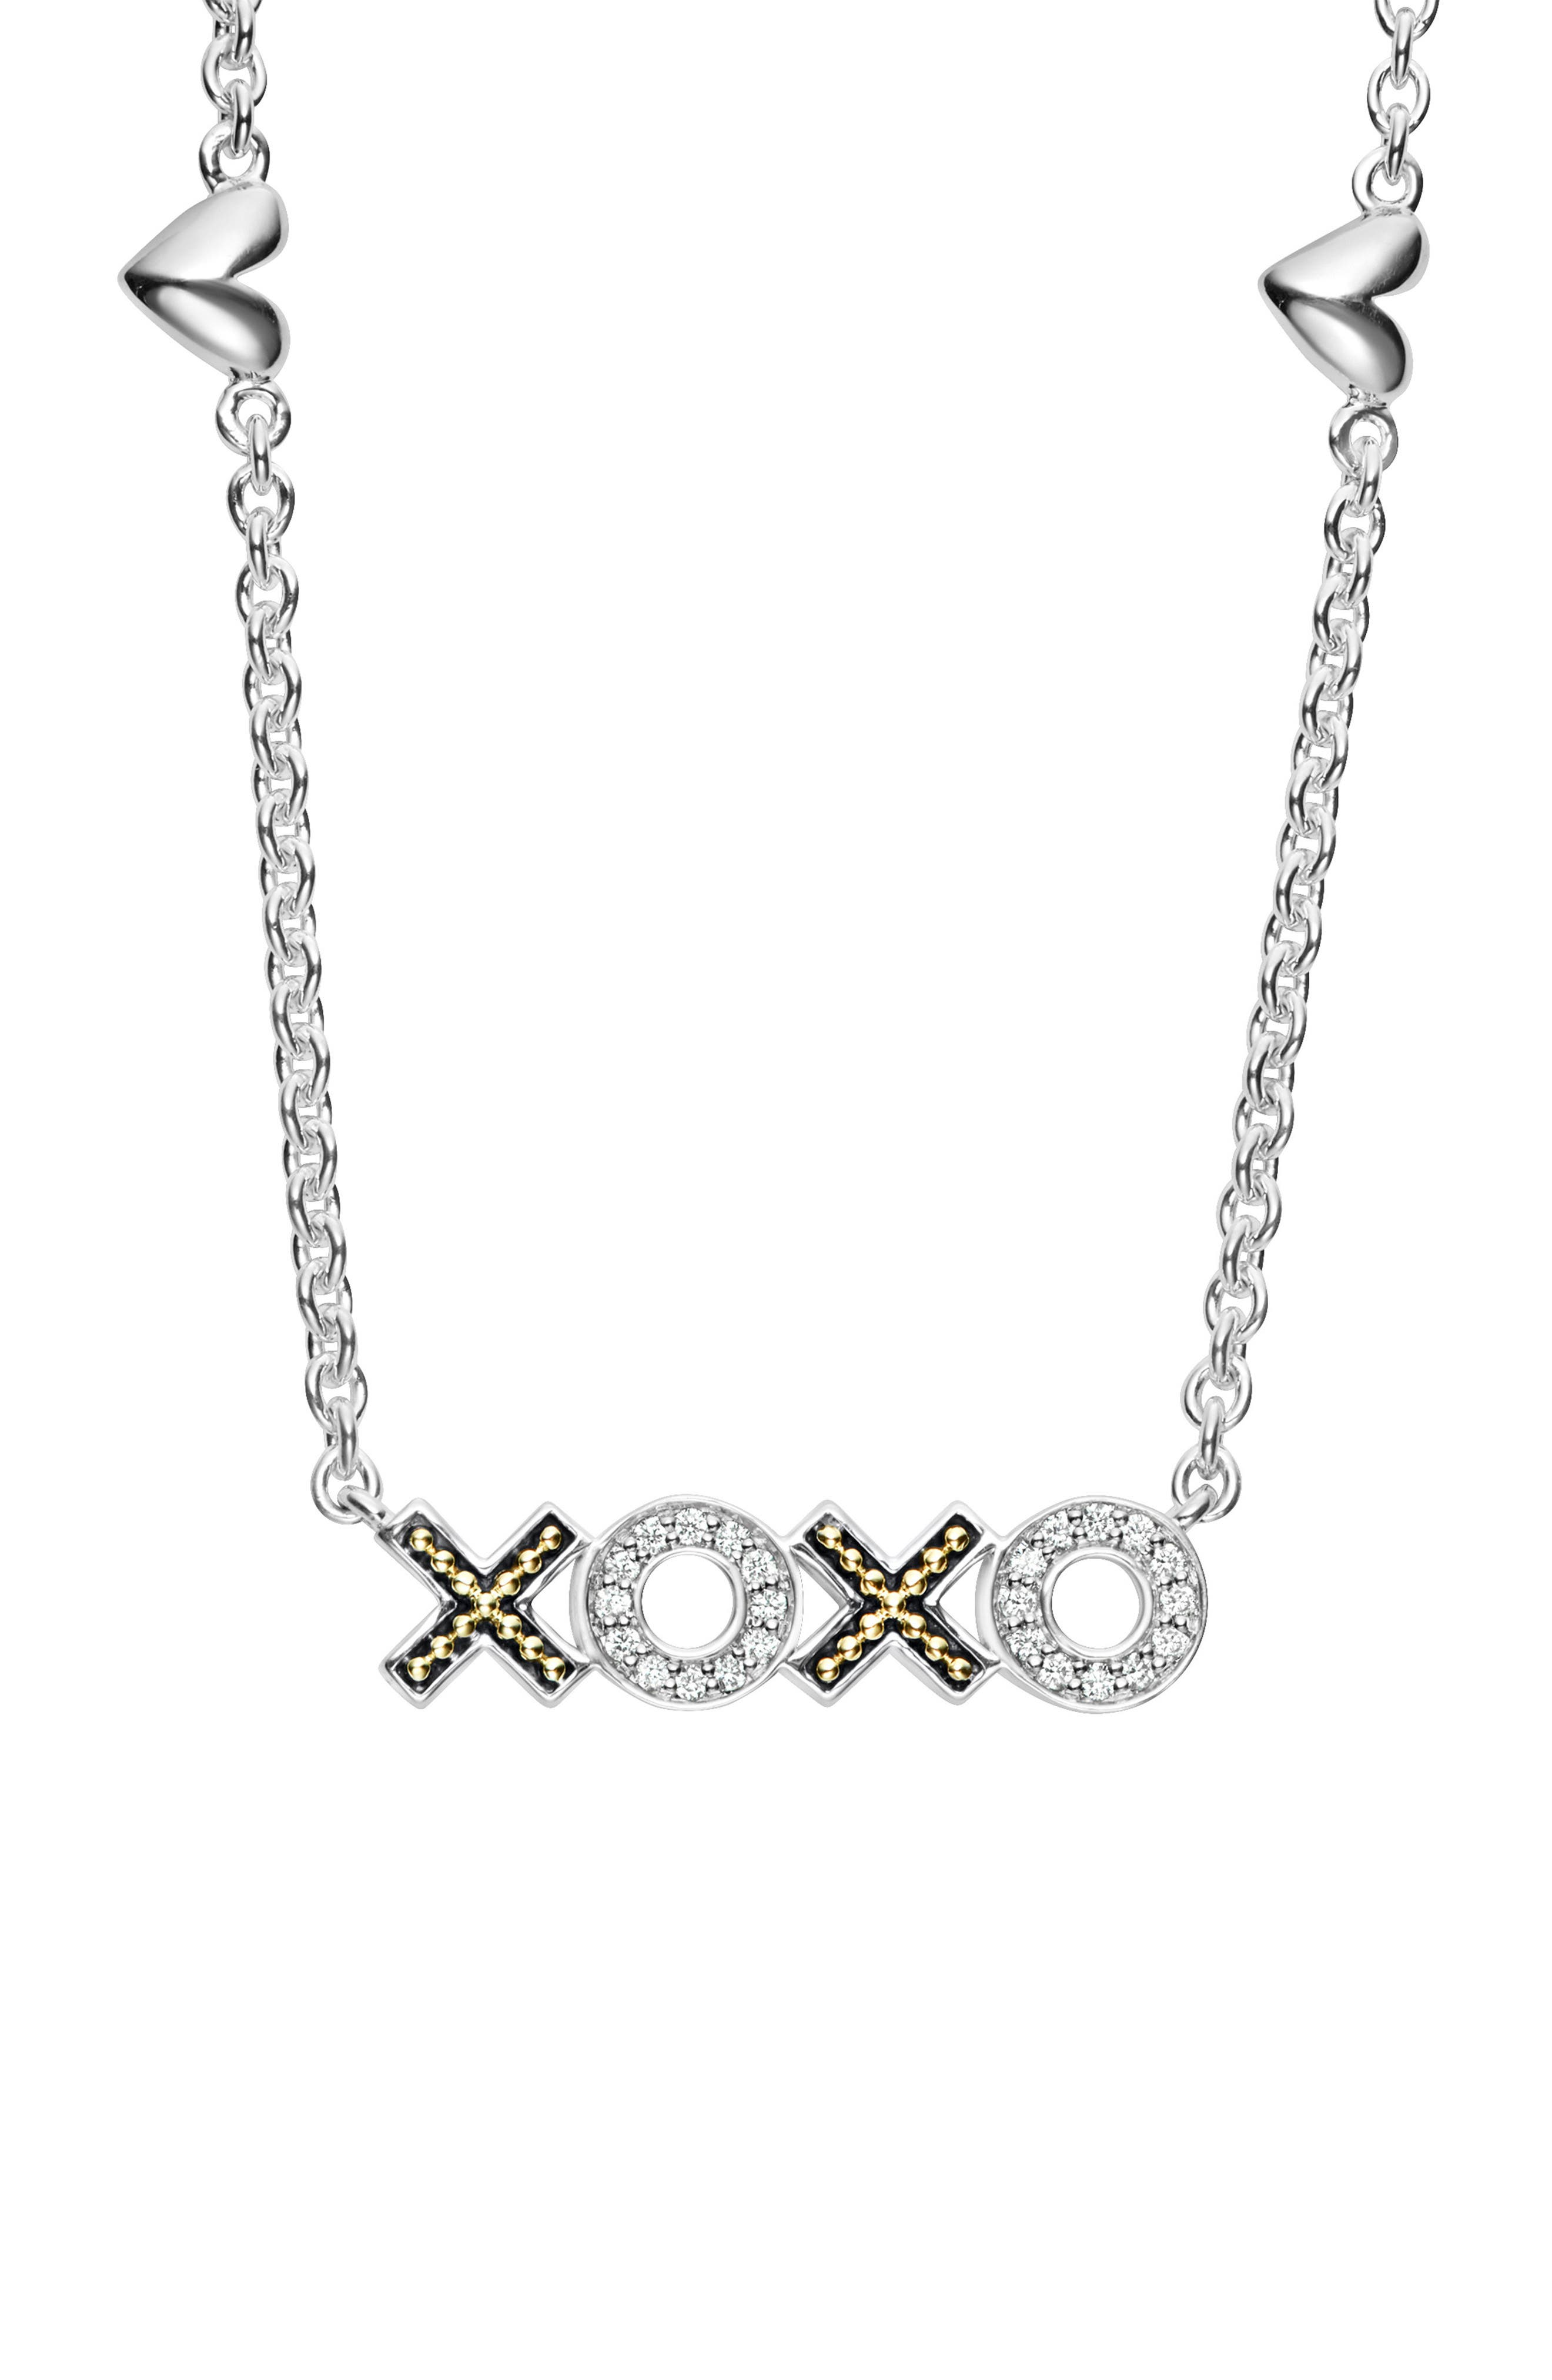 Beloved Diamond XOXO Chain Necklace,                             Main thumbnail 1, color,                             SILVER/ DIAMOND